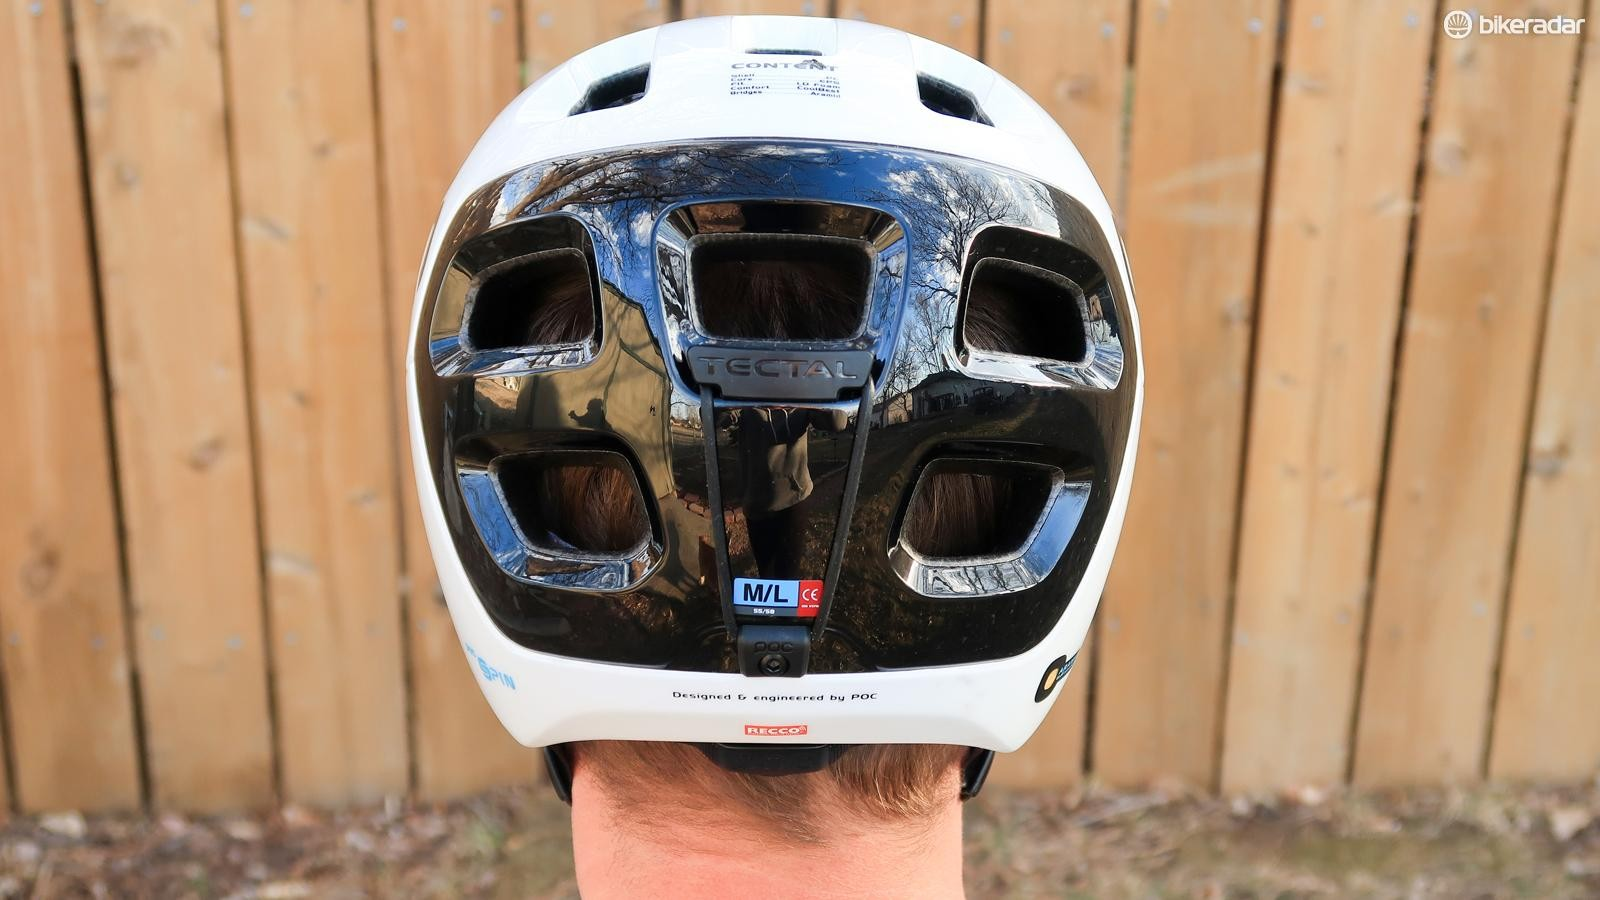 A band on the back of the Tectal Race holds goggle straps in place for all your enduro needs